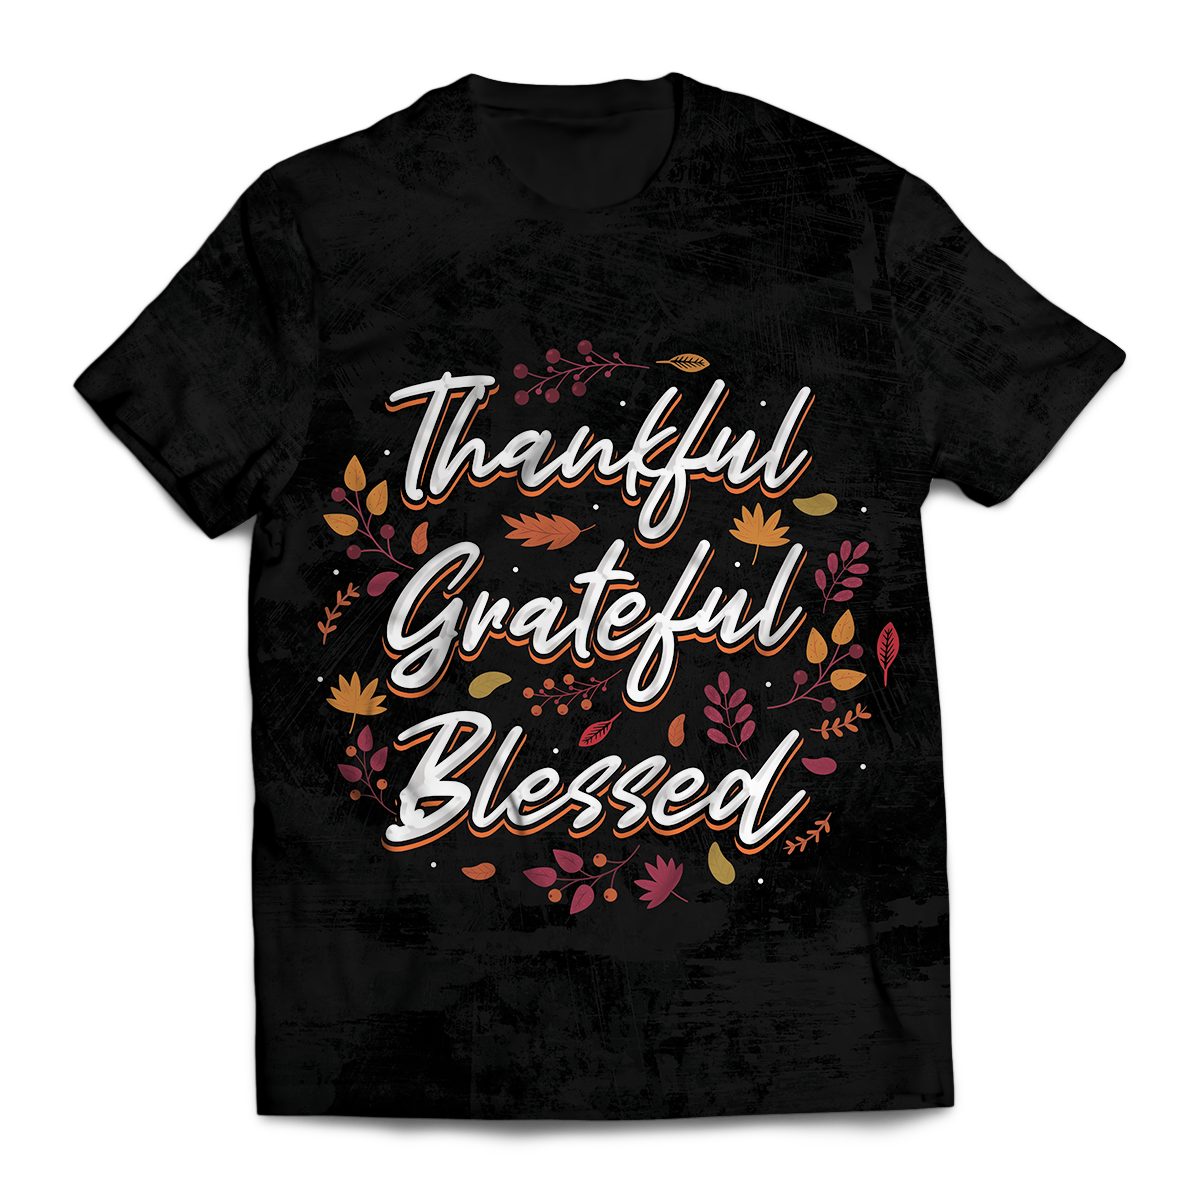 Thankful Grateful Blessed Unisex T-Shirt